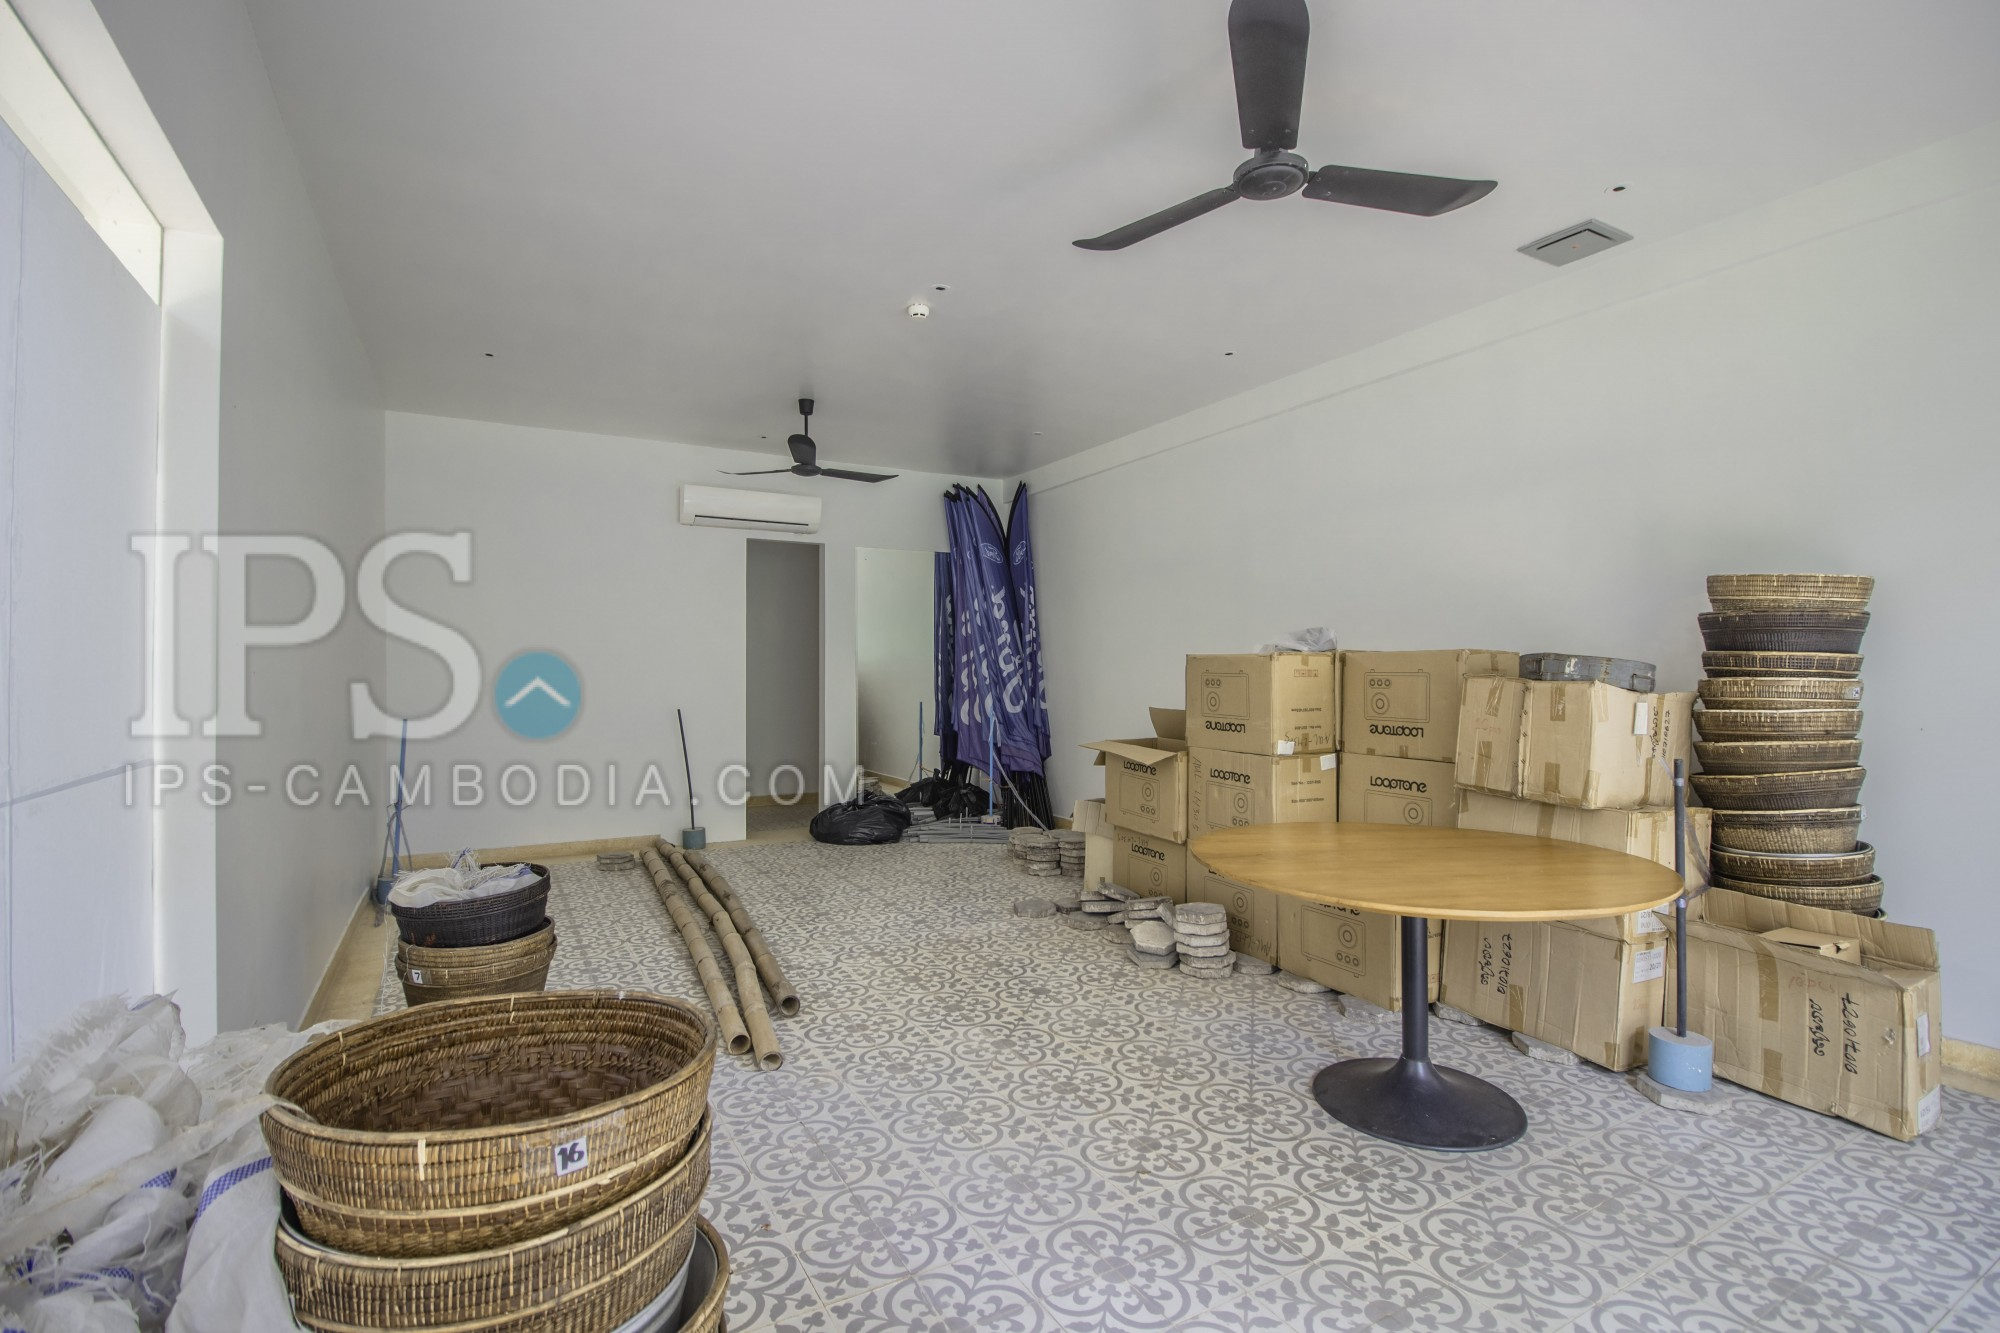 Office Space For Rent in FCC, Svay Dangkum, Siem Reap